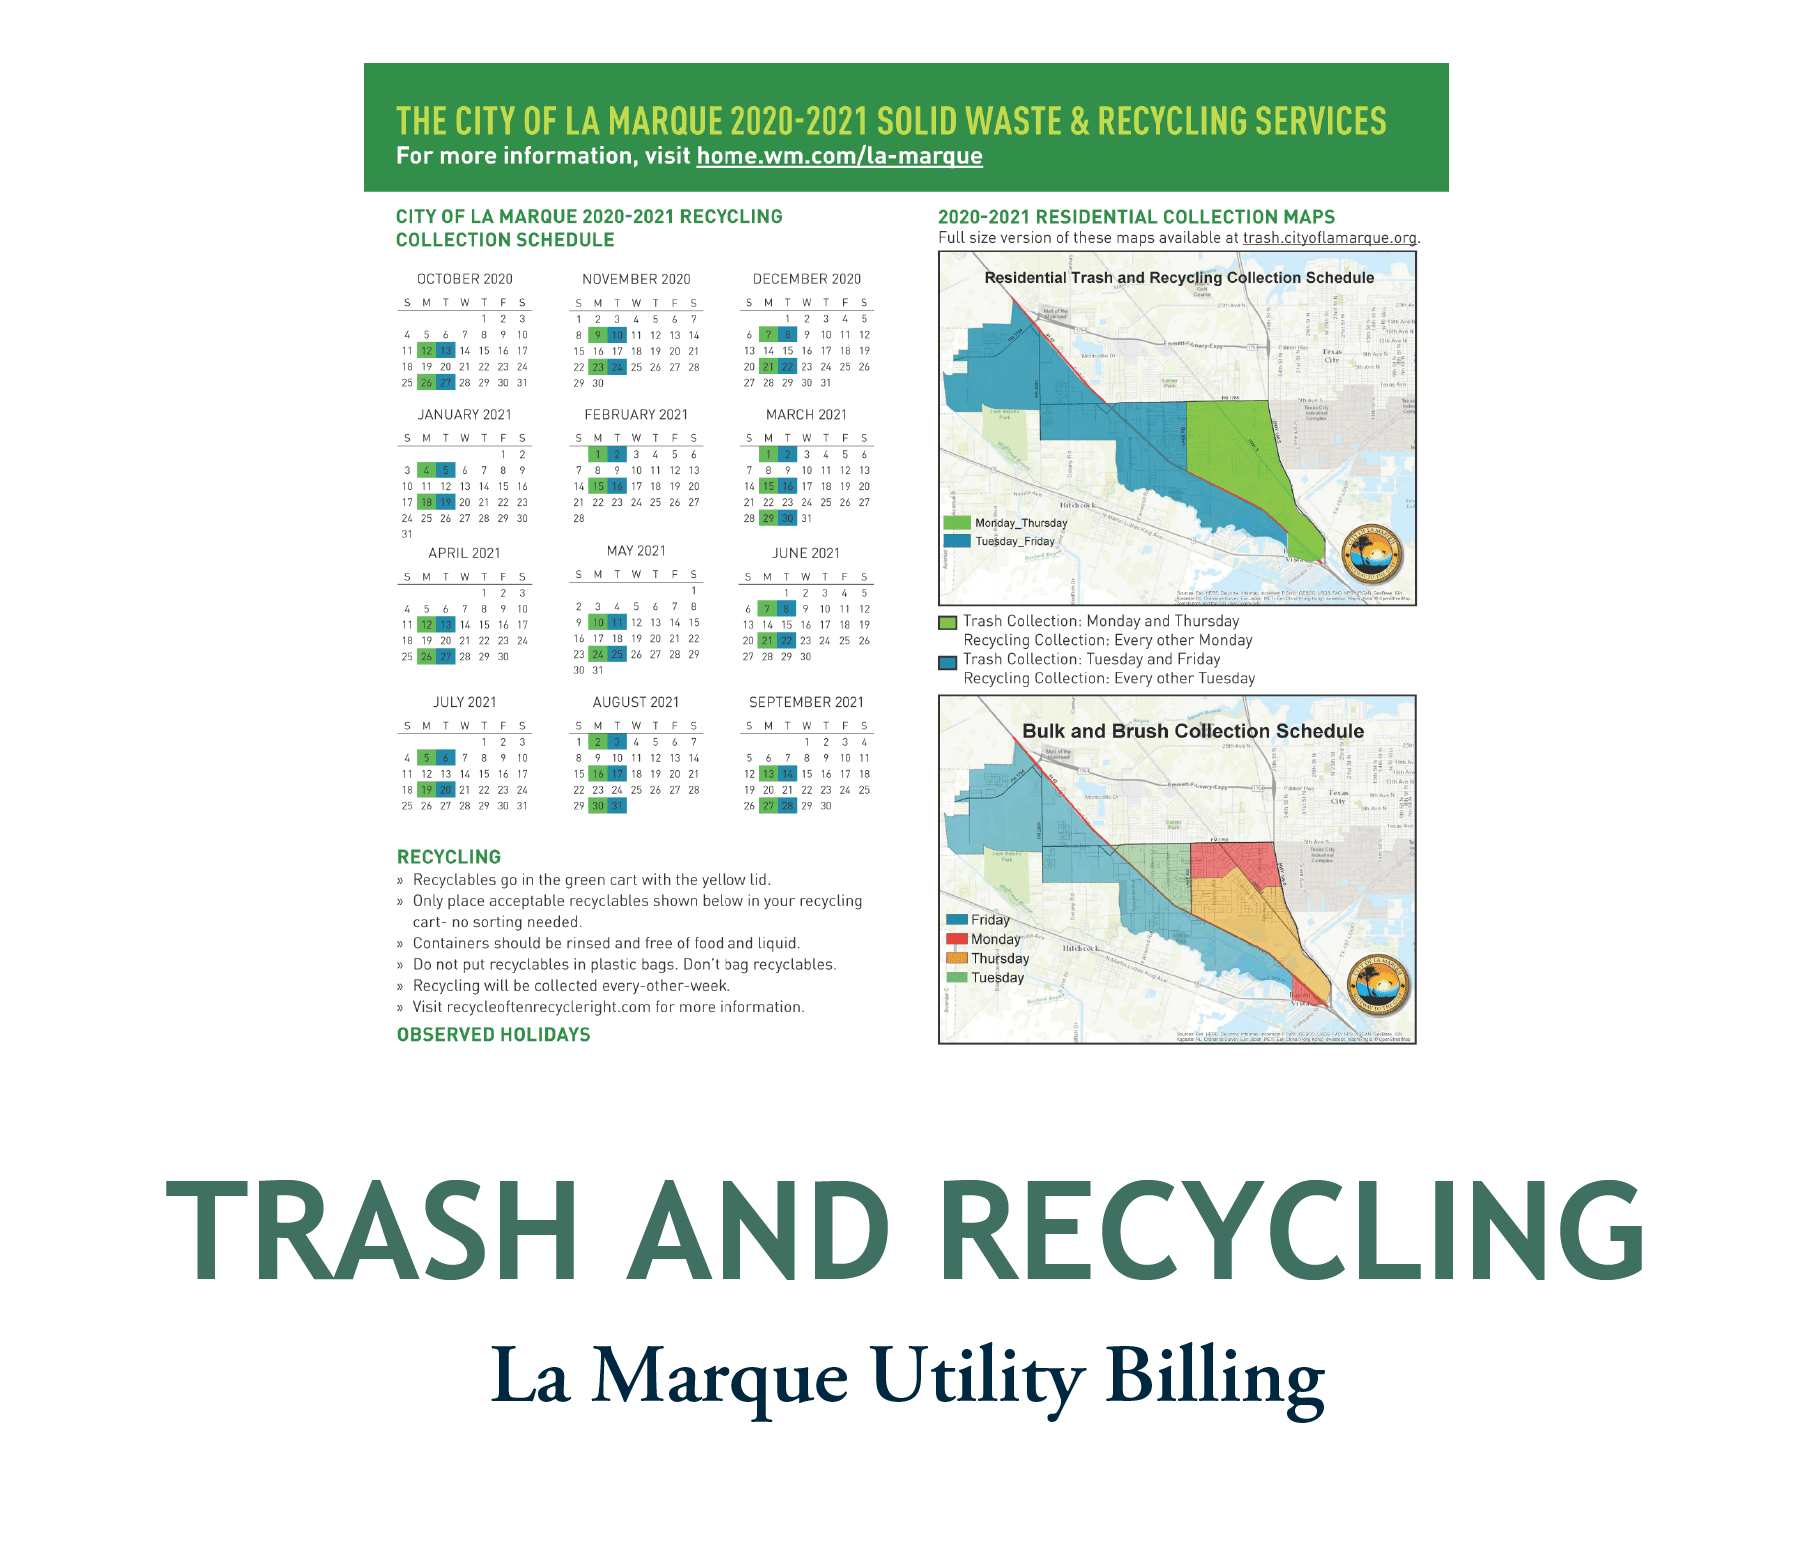 La-Marque-2020-2021-Trash-and-Recycling-Schedule